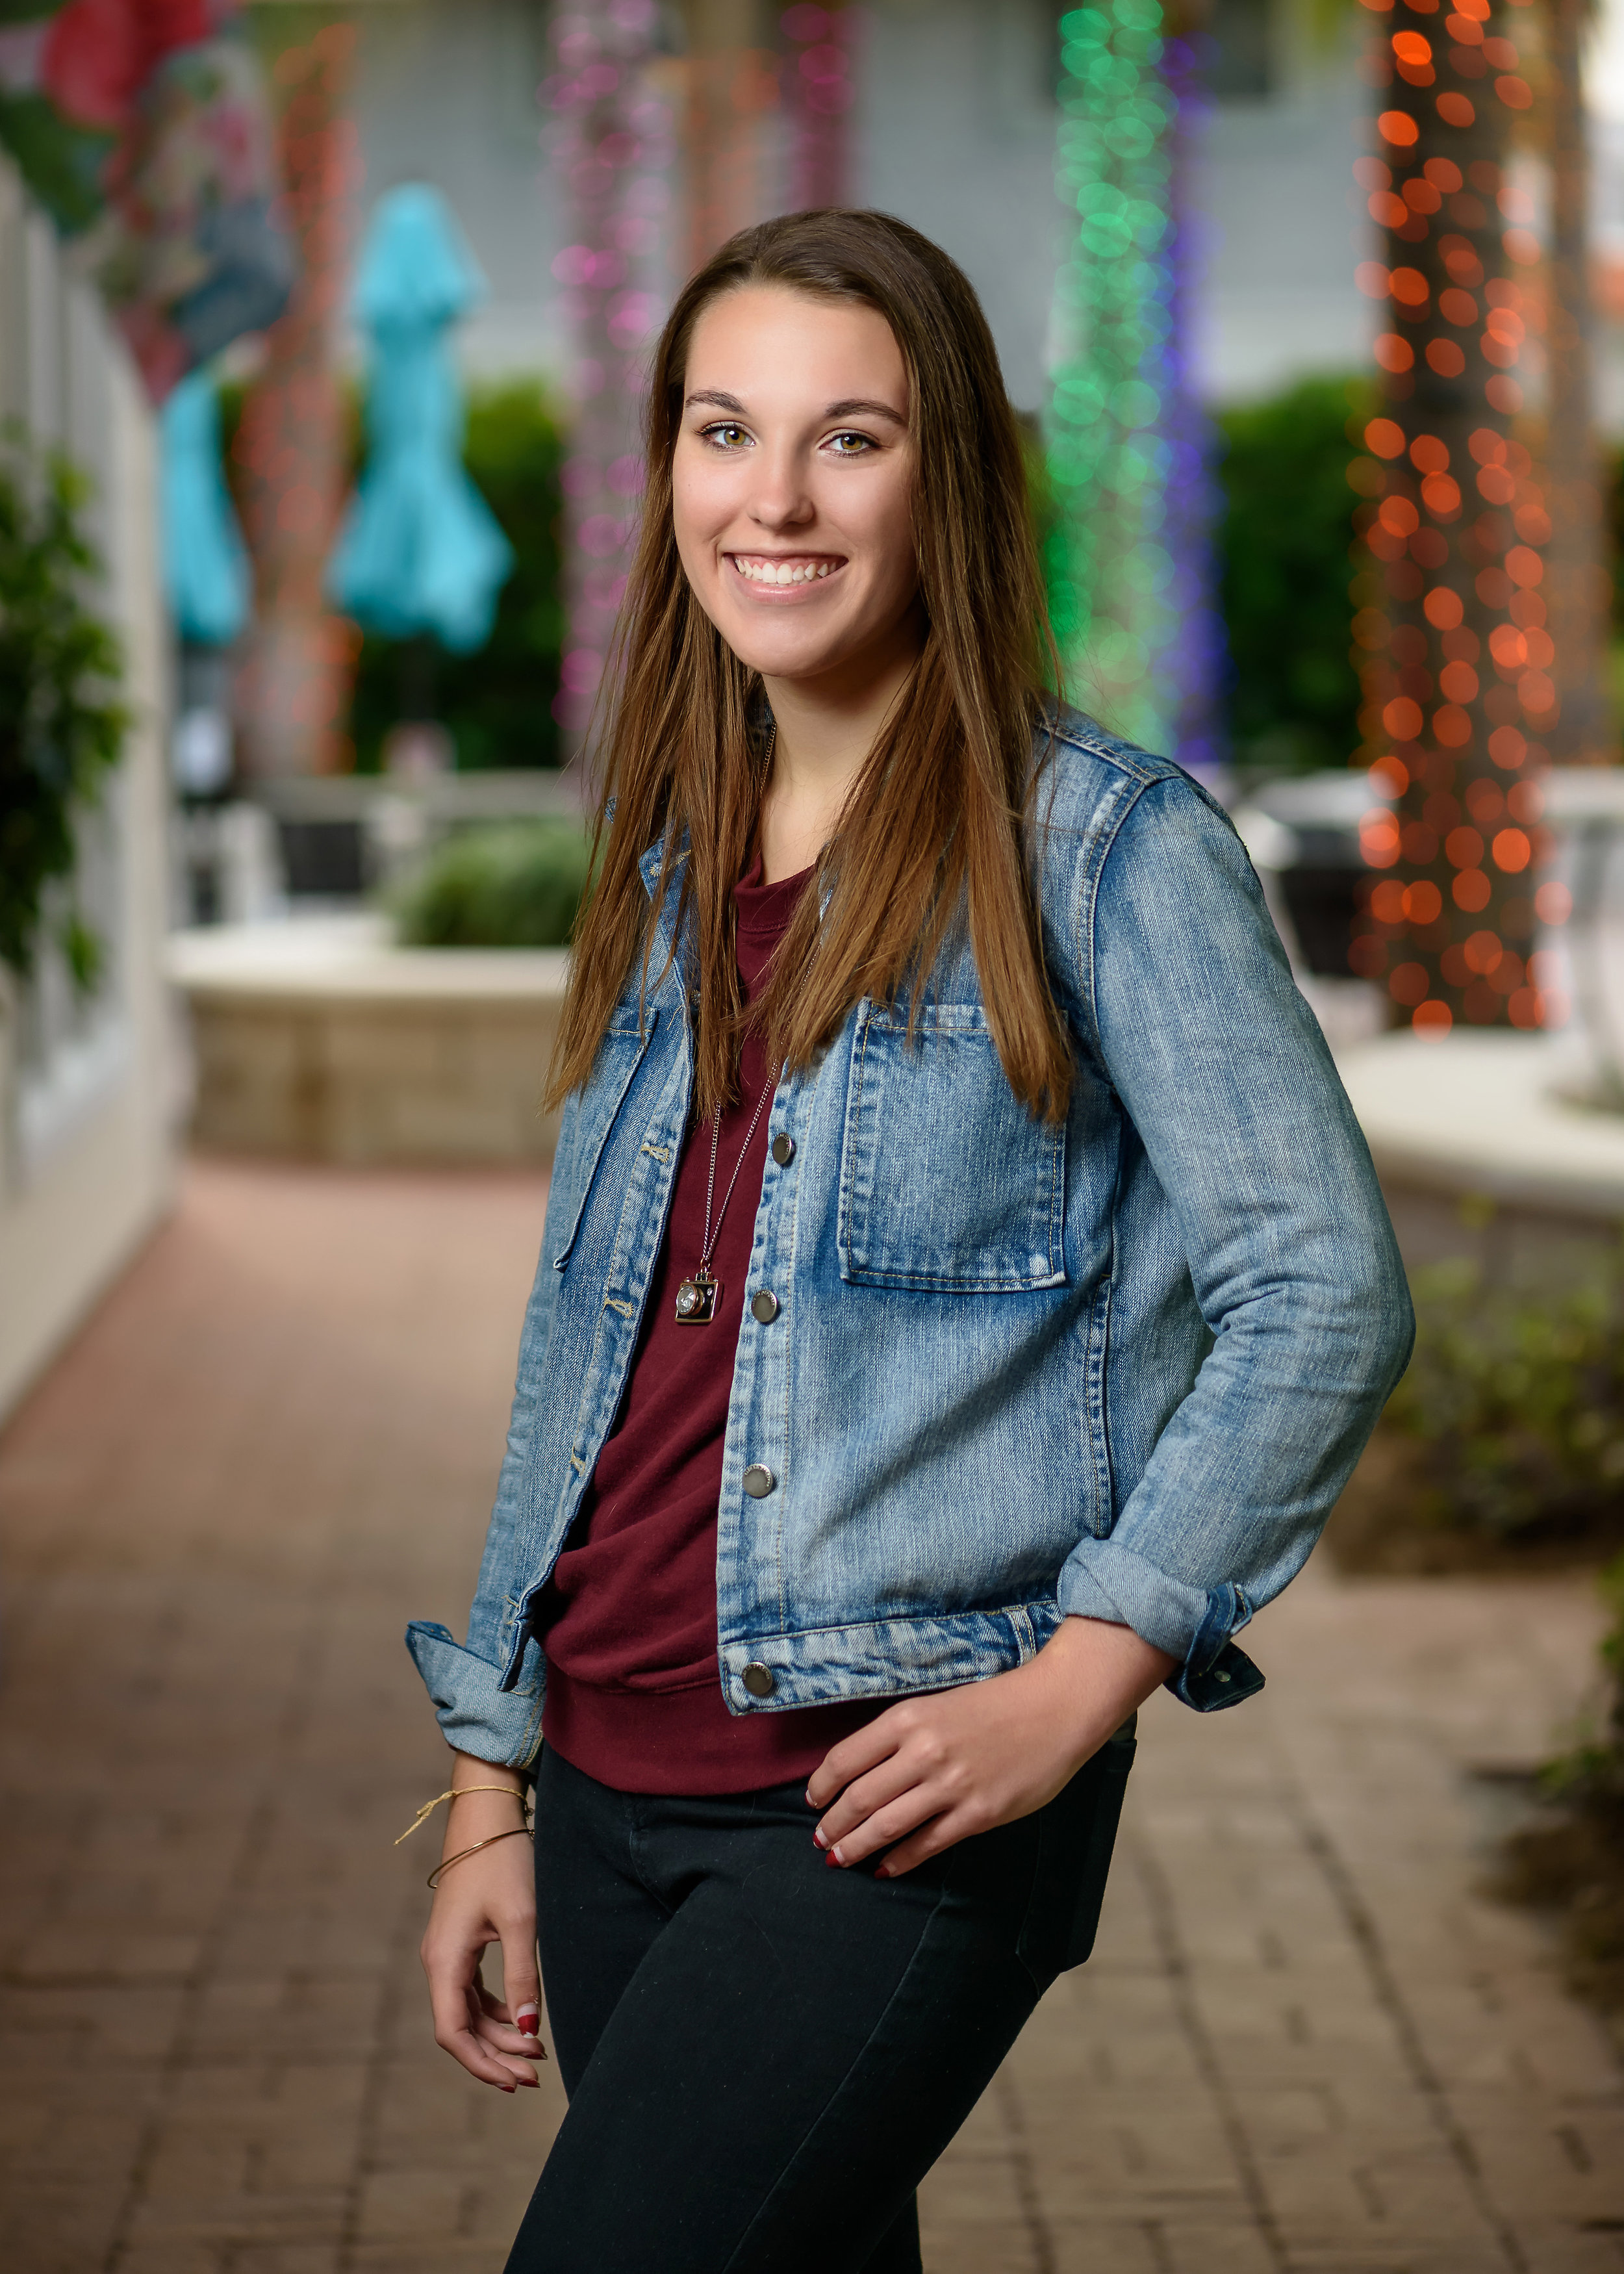 LOCATION PORTRAIT SESSIONS - Who says senior portraits are only for seniors? Whether you're 15 or 50, we can design a longer portrait session just for you.